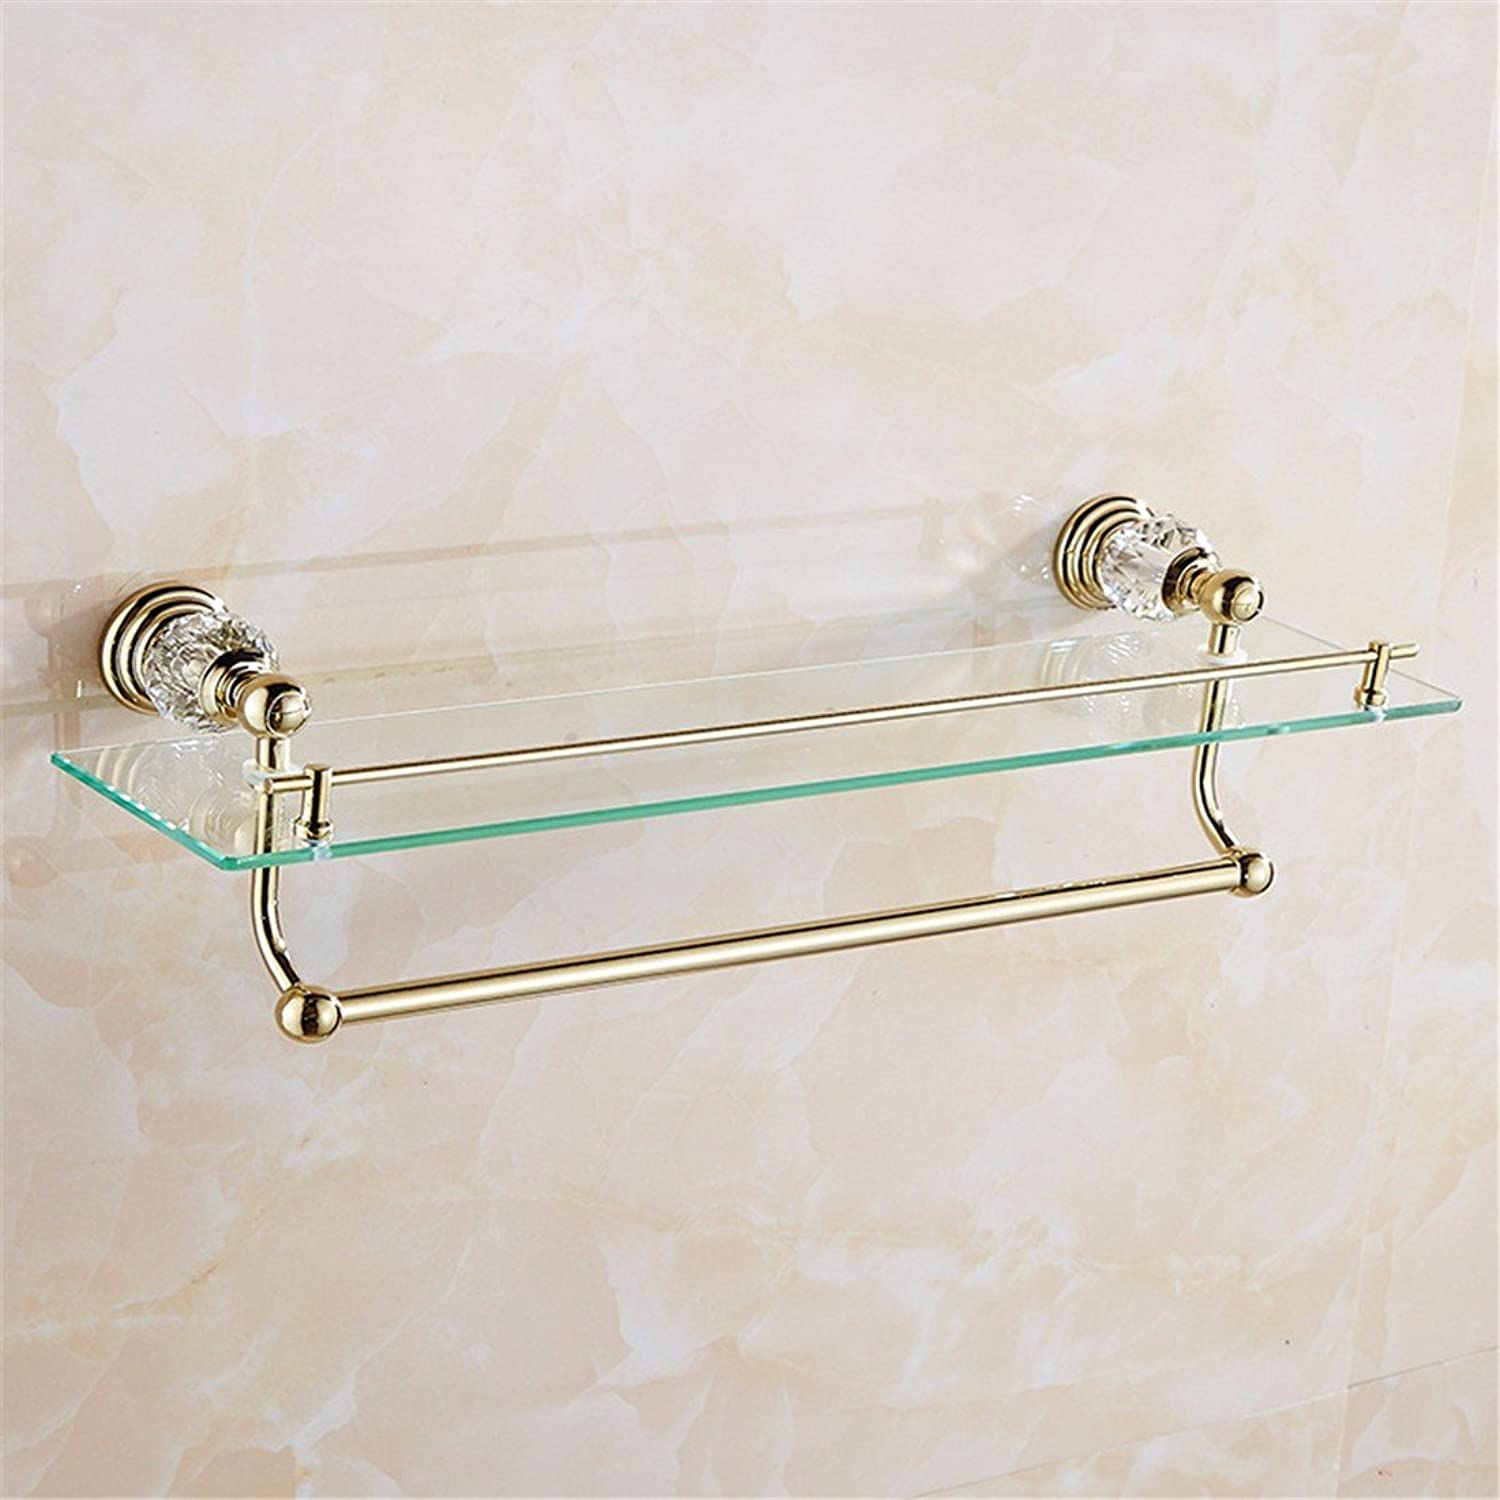 LAONA European style stainless steel, golden crystal base, bathroom pendant set, single and double bar toothbrush holder,Rack 1